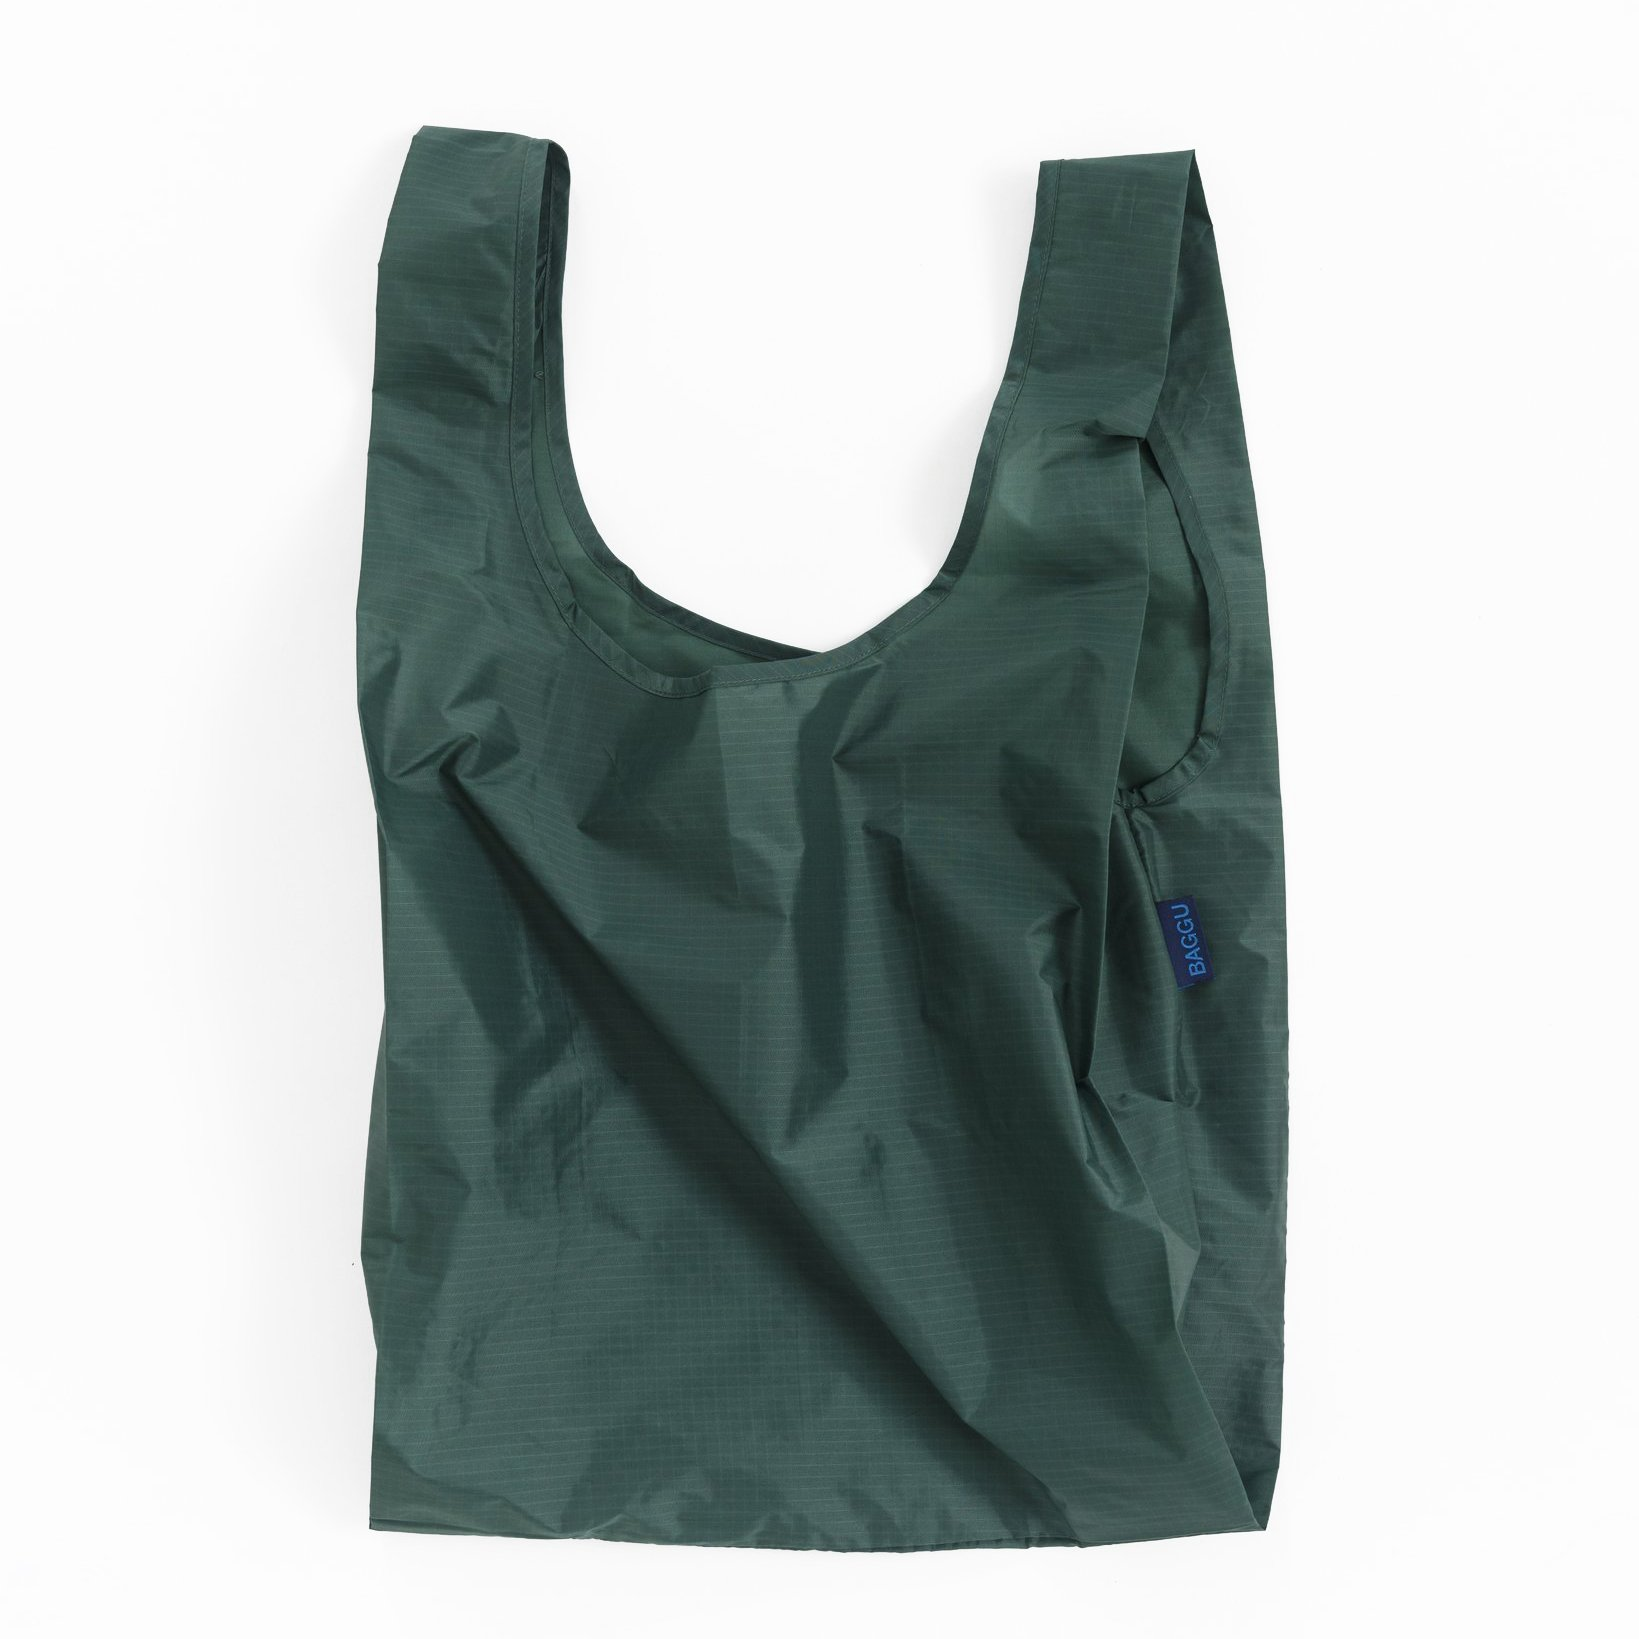 c1e154419b0 Reusable Grocery Tote Bag by BAGGU Plastic Grocery Bags